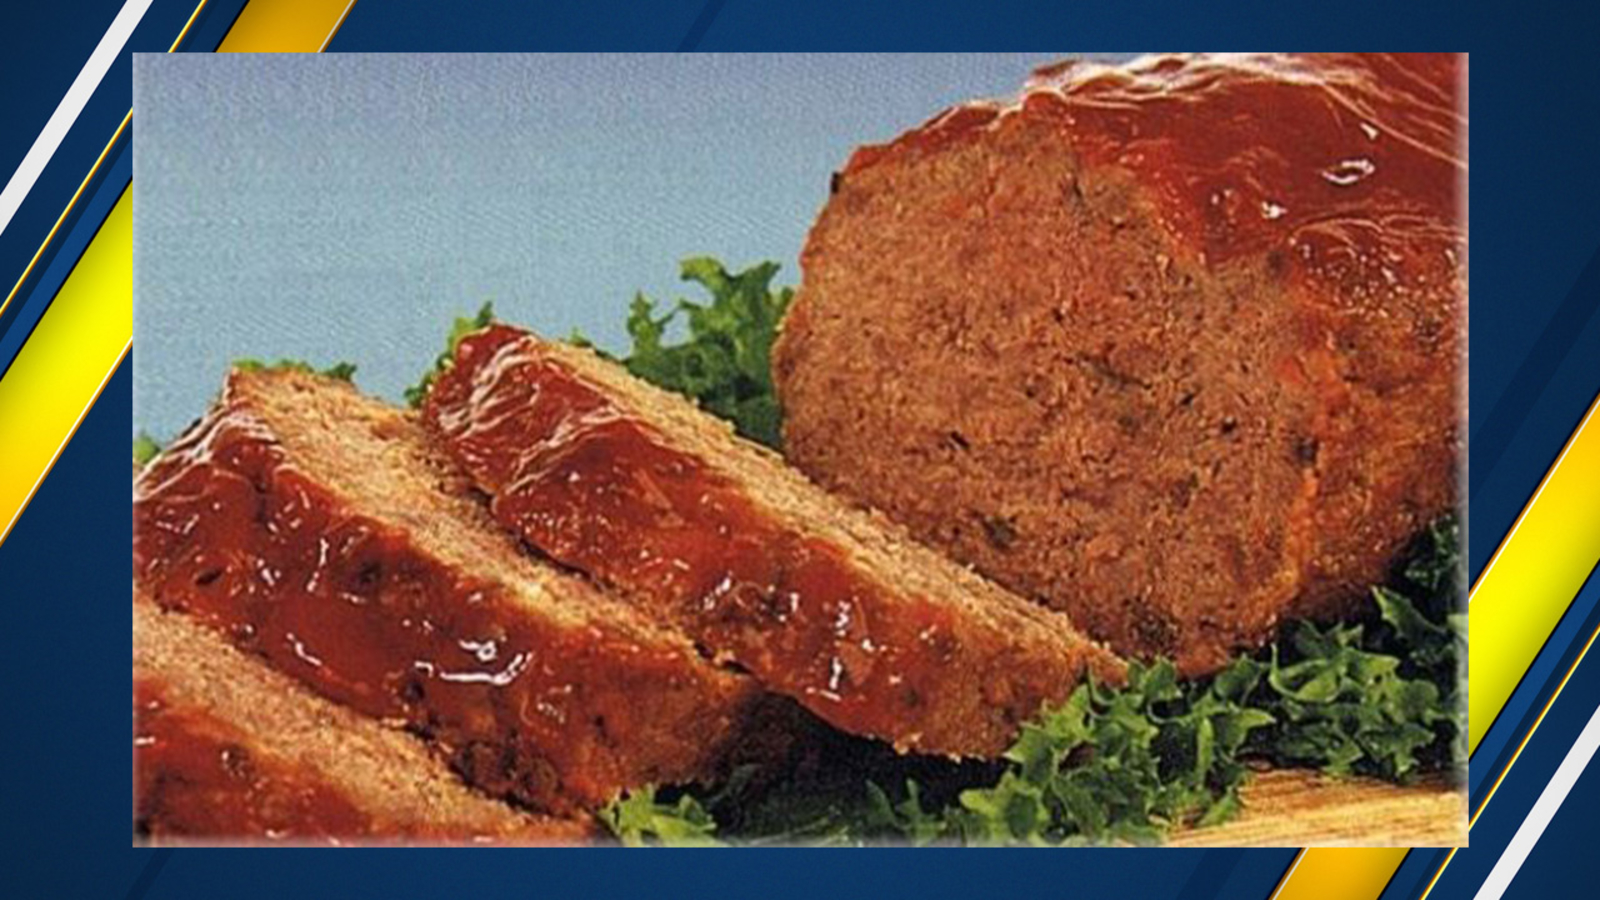 3,490 pounds of raw ground beef meatloaf shipped to CA hospitals recalled